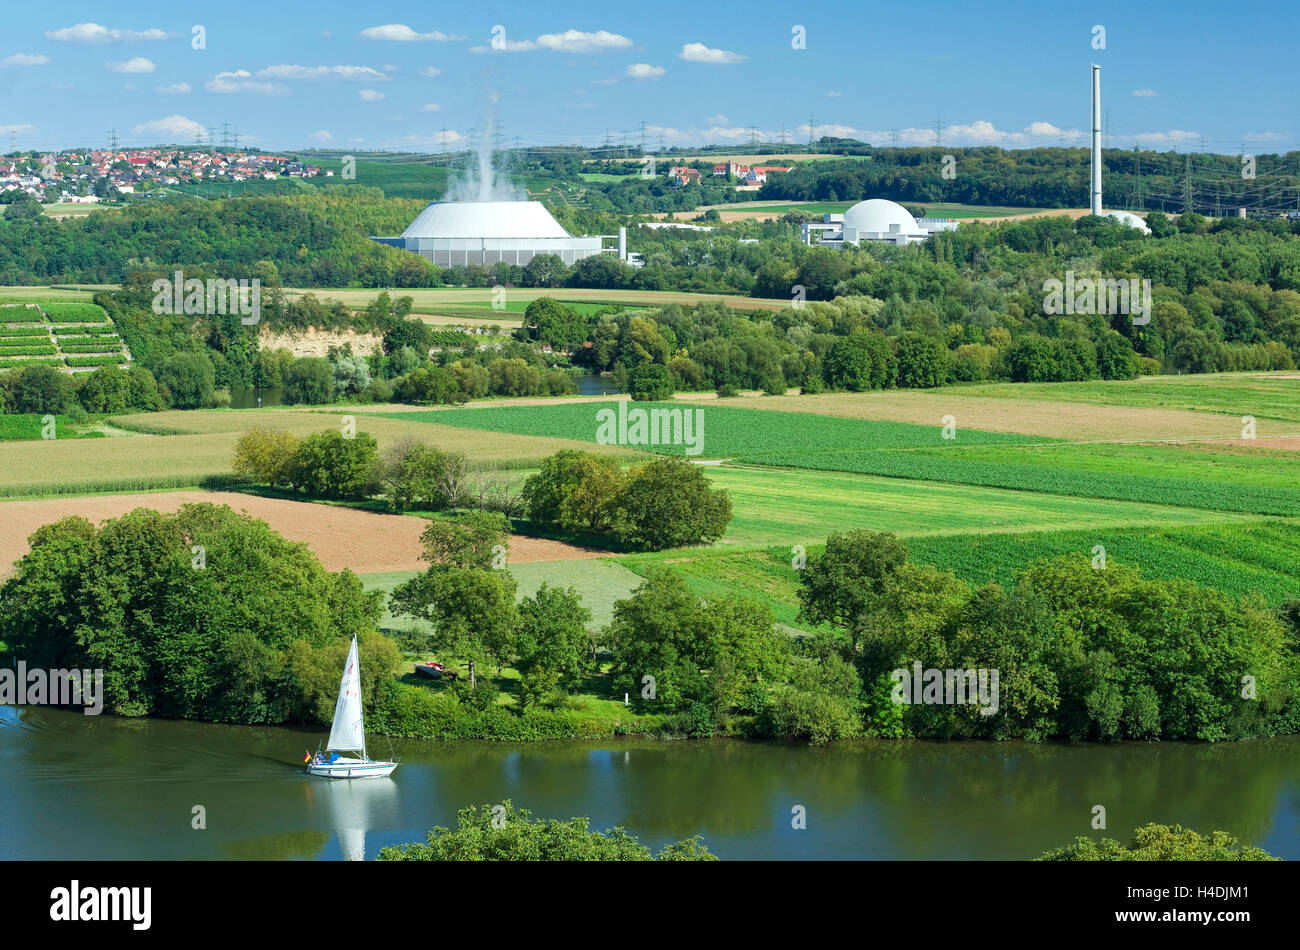 Germany, Baden-Wurttemberg, Neckar west home, nuclear power plant Neckar west home, EnBW Kernkraft GmbH, view from - Stock Image